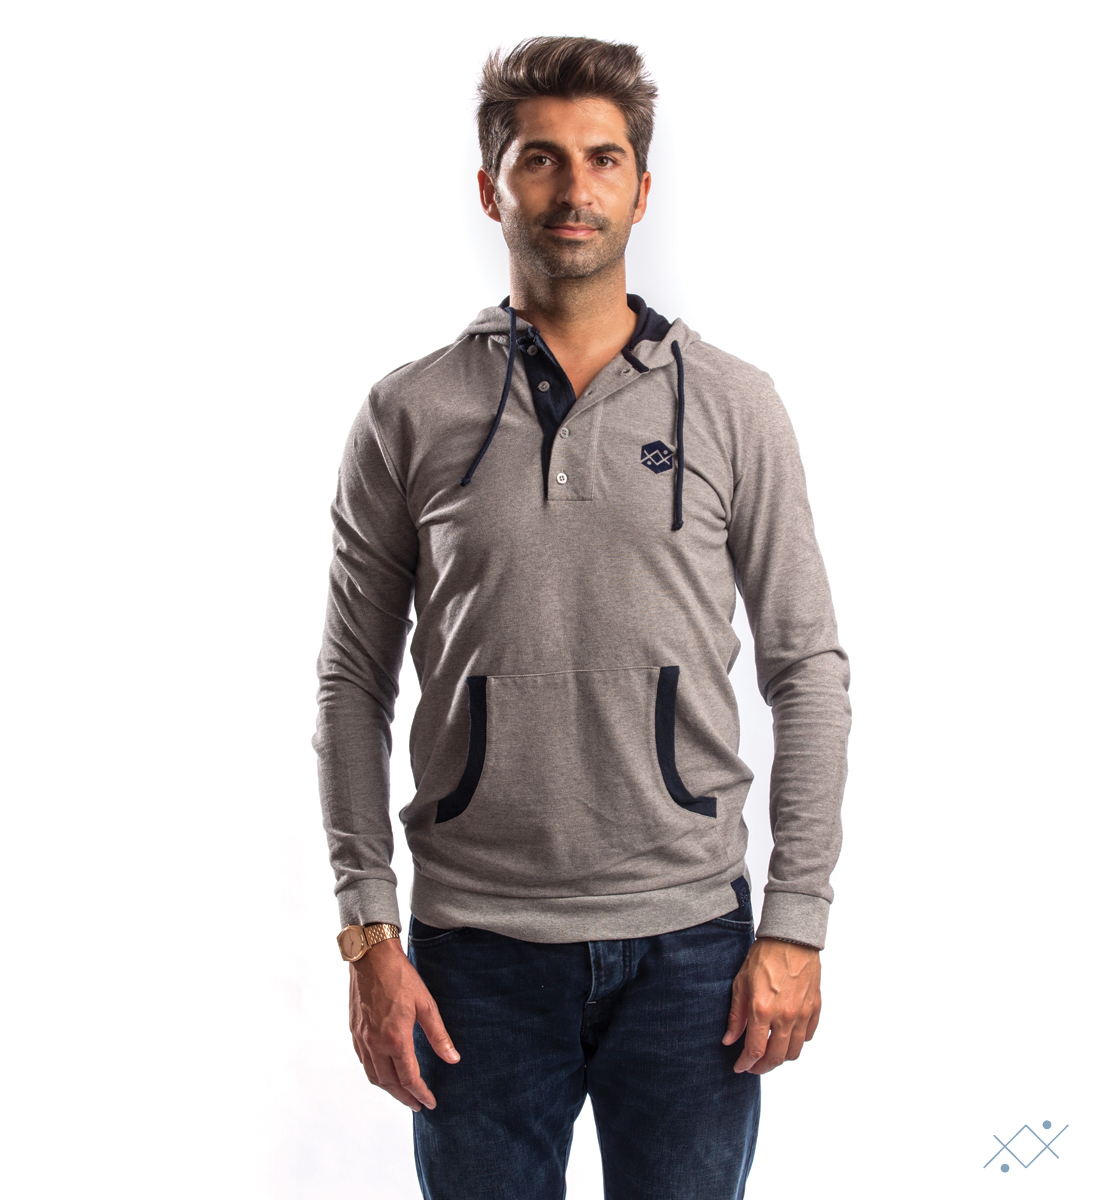 Grey hoodie with contrast color jersey on hoodie linning and details - list